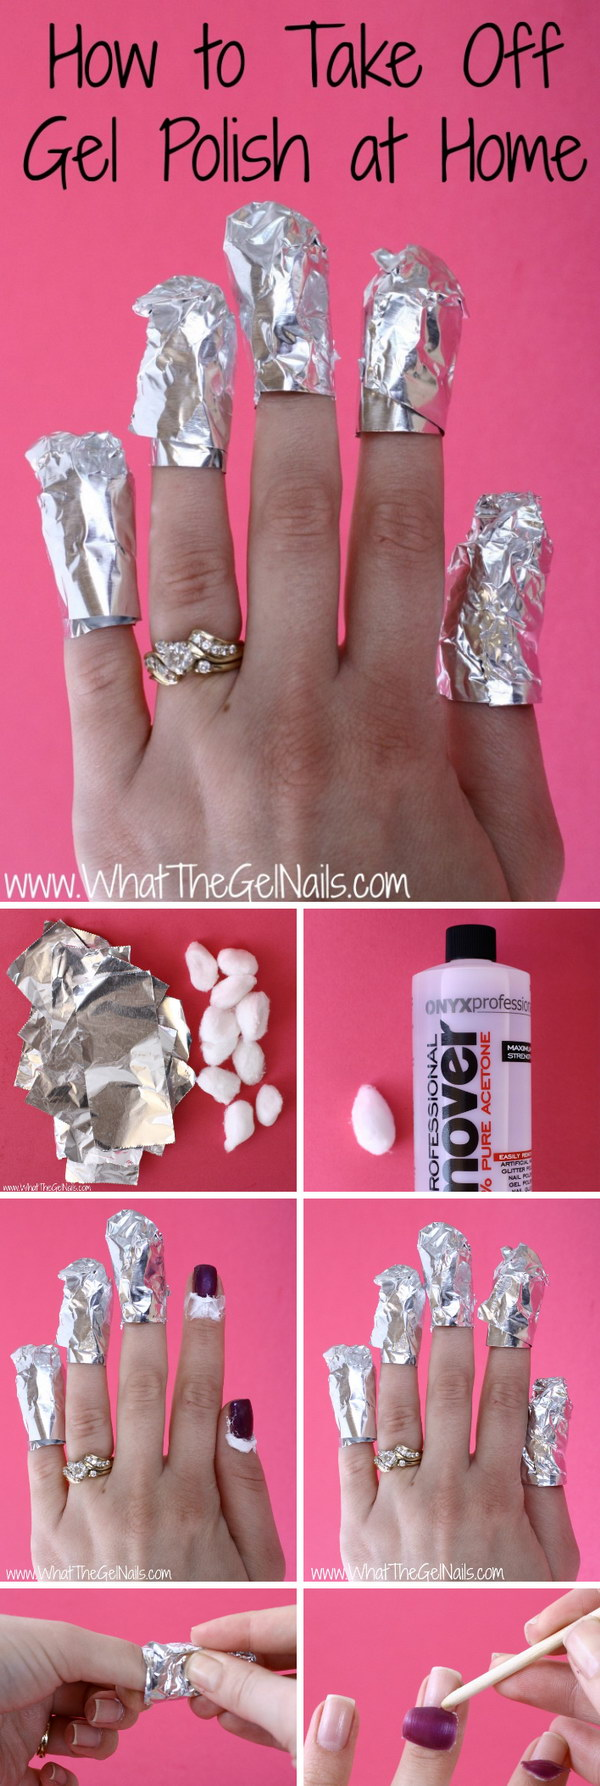 how-to-remove-gel-polish-at-home-1